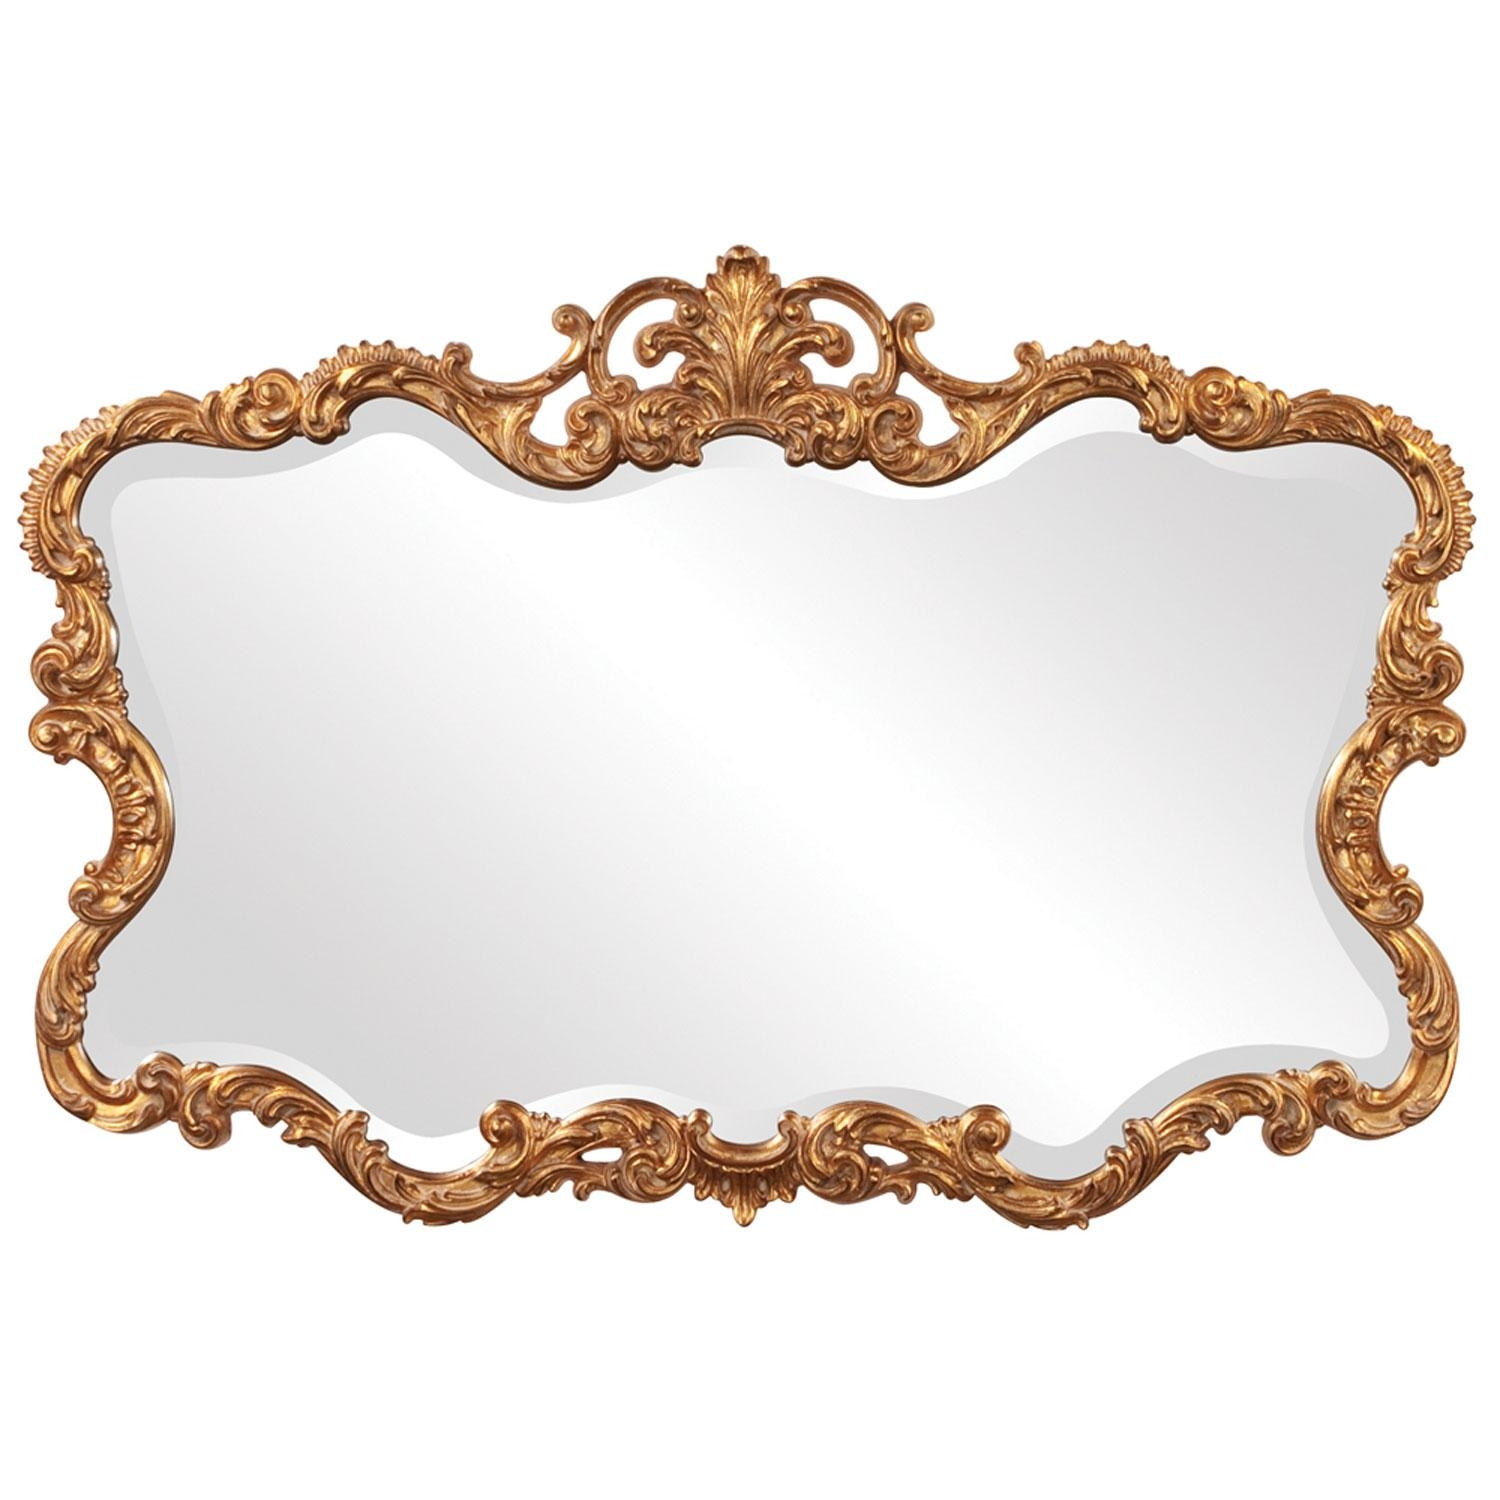 Gold Mirrors | Bellacor For Vintage Gold Mirrors (Image 10 of 20)